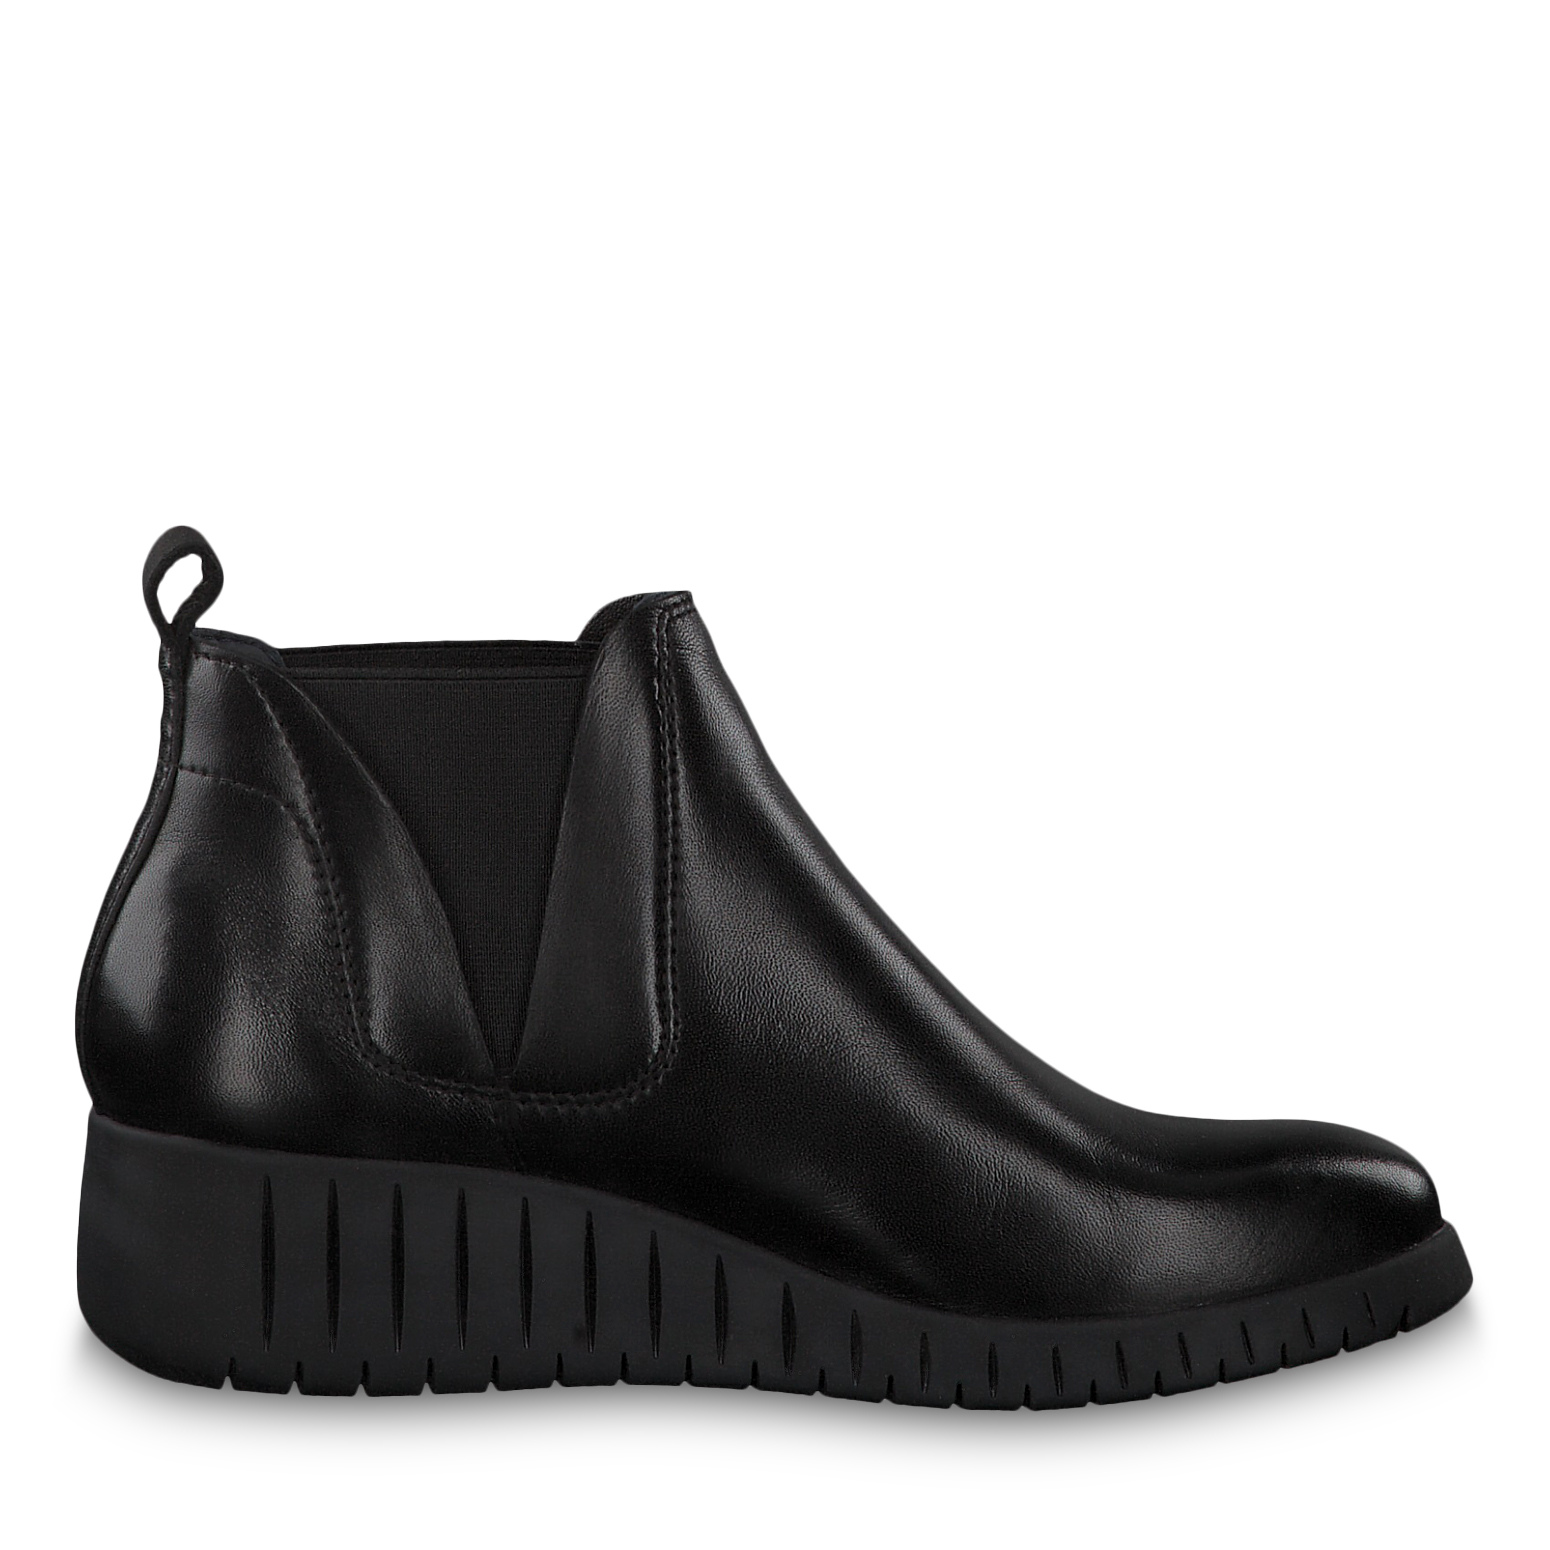 Leather Chelsea boot - black, BLACK ANTIC, hi-res